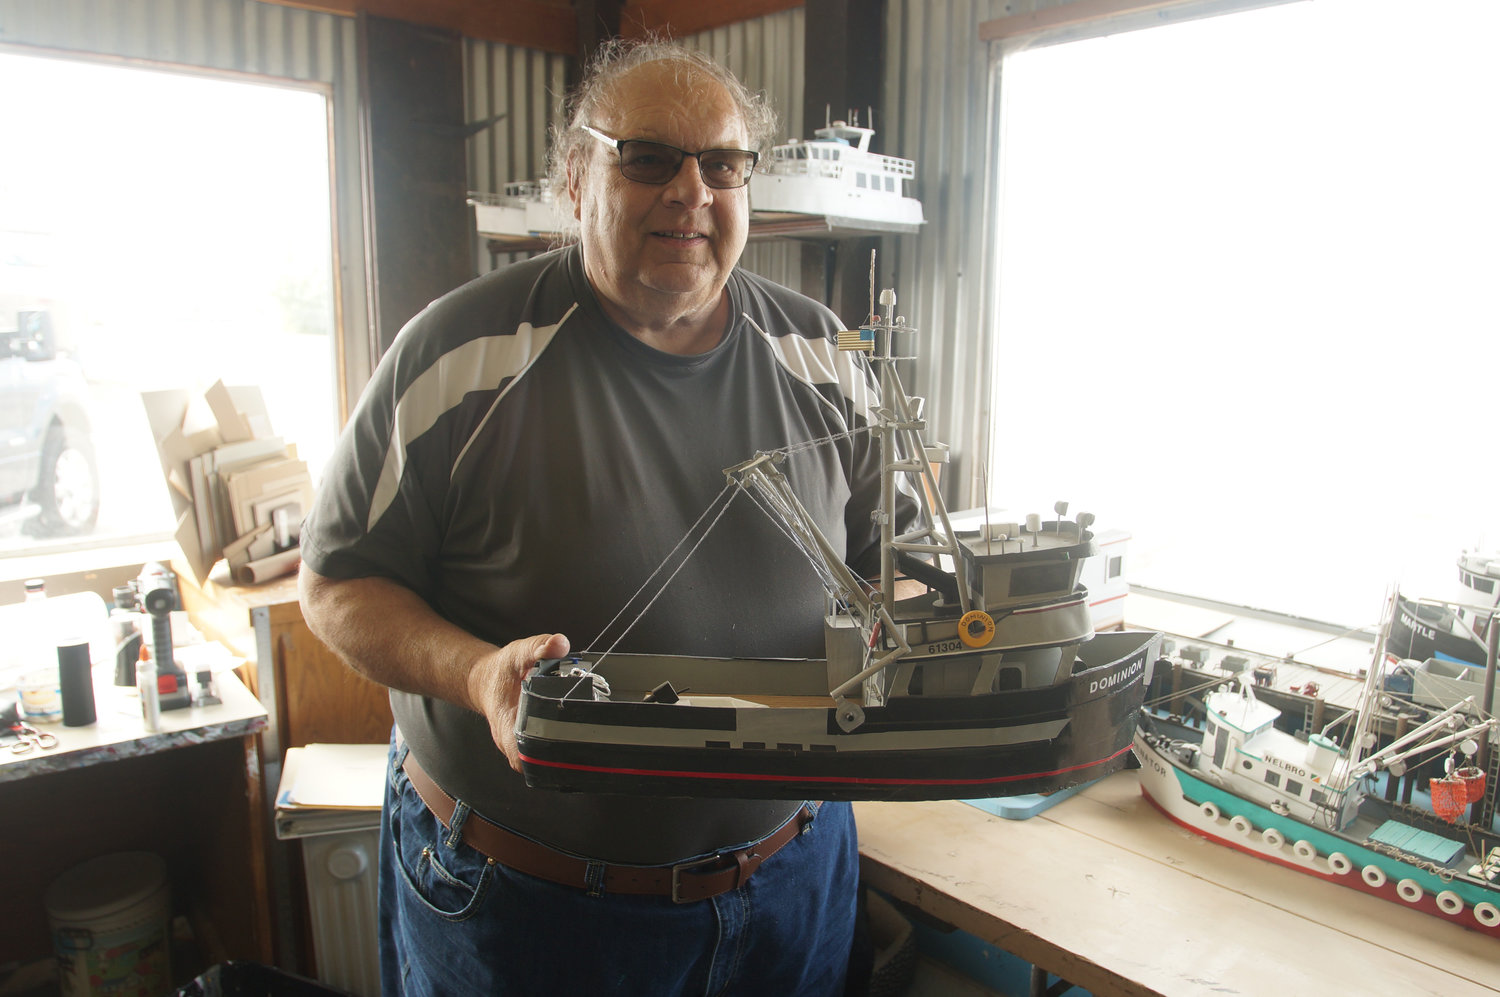 Mike Dodd with one of his favorite model boats.